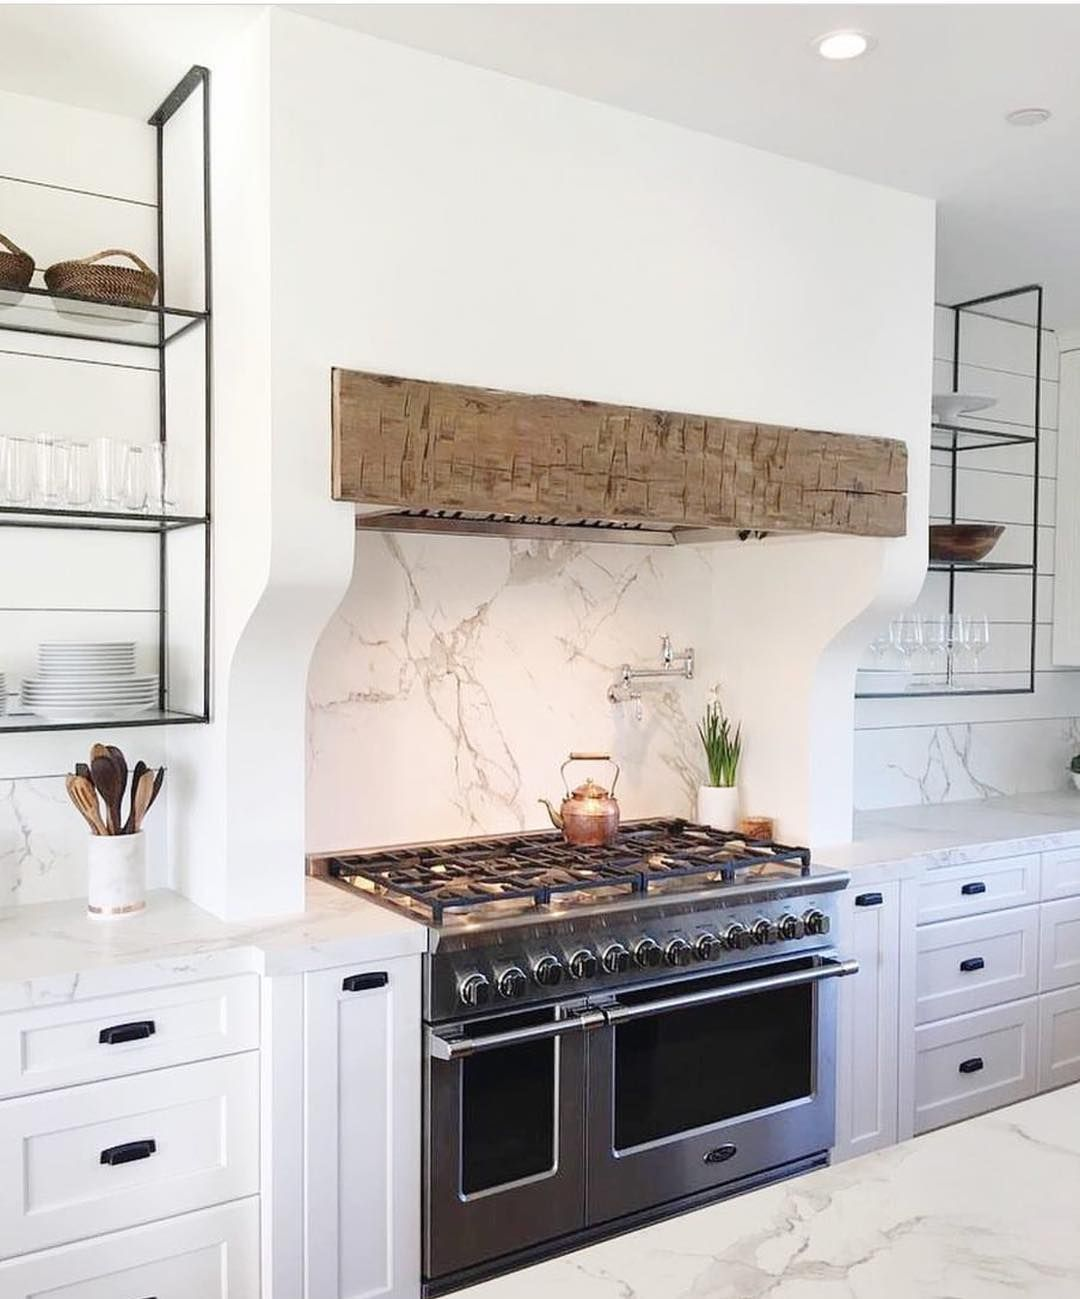 15 gorgeous kitchen range hoods that are eye candy not eyesores the most beautiful kitchen hoods weve ever seen